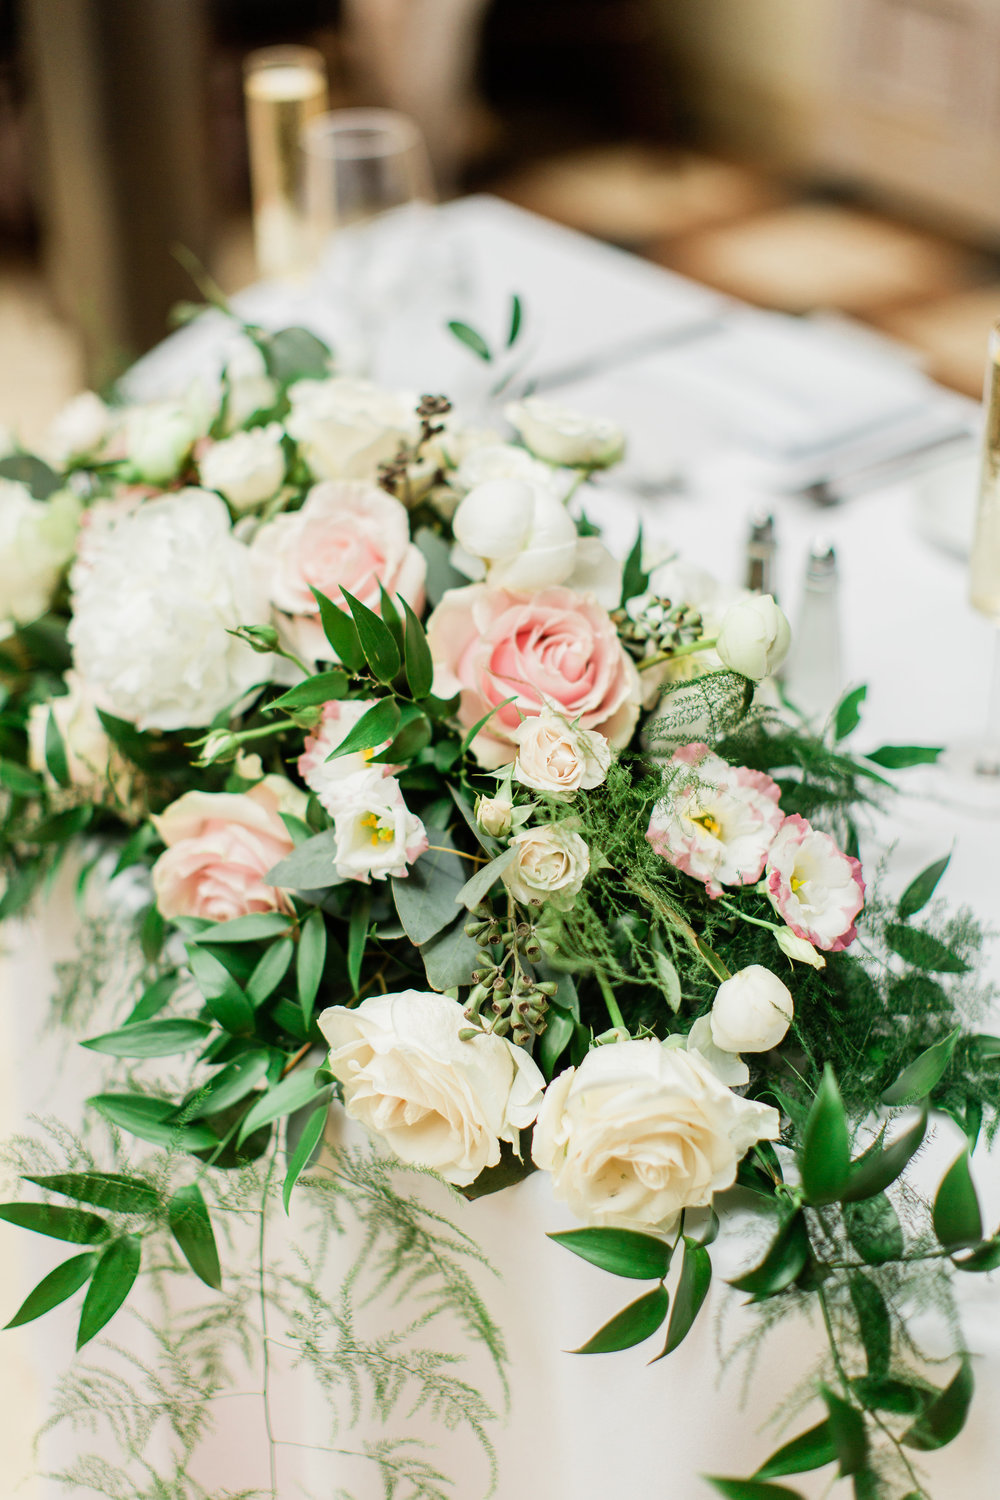 Blush Greenery Sweetheart Table by La Feterie South Florida Wedding Planning by Fleeting Elegance